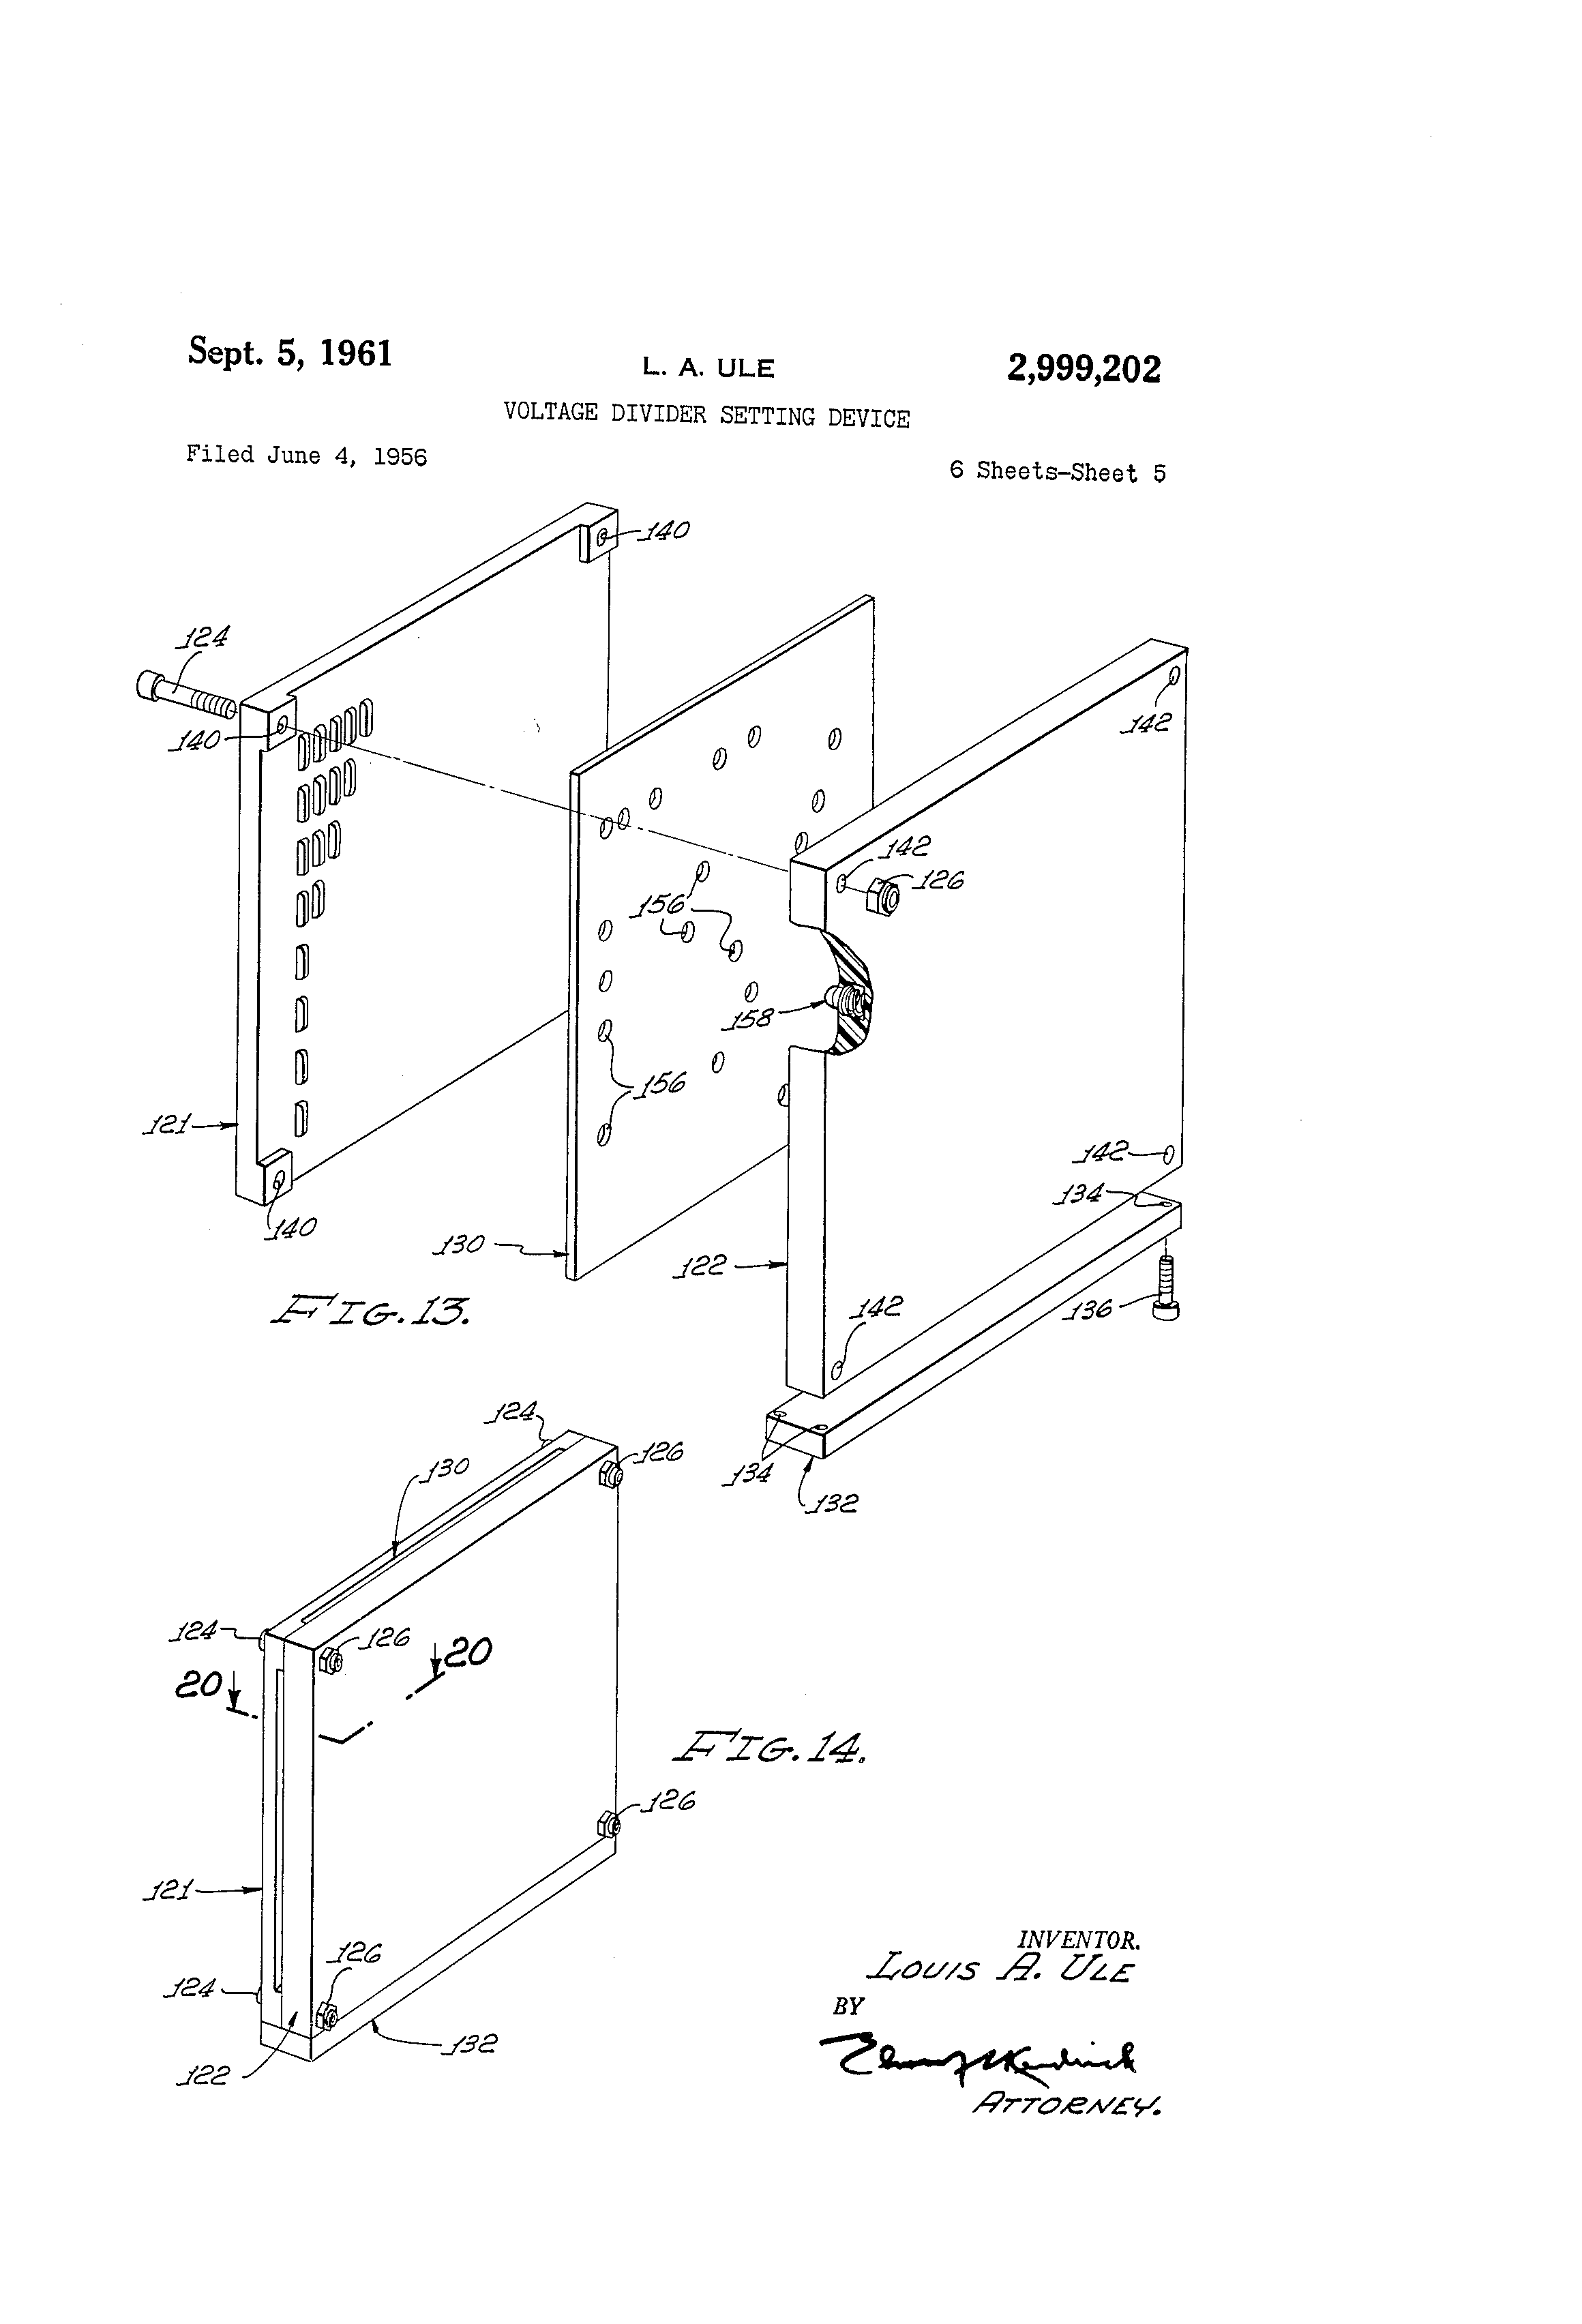 patent us2999202 - voltage divider setting device